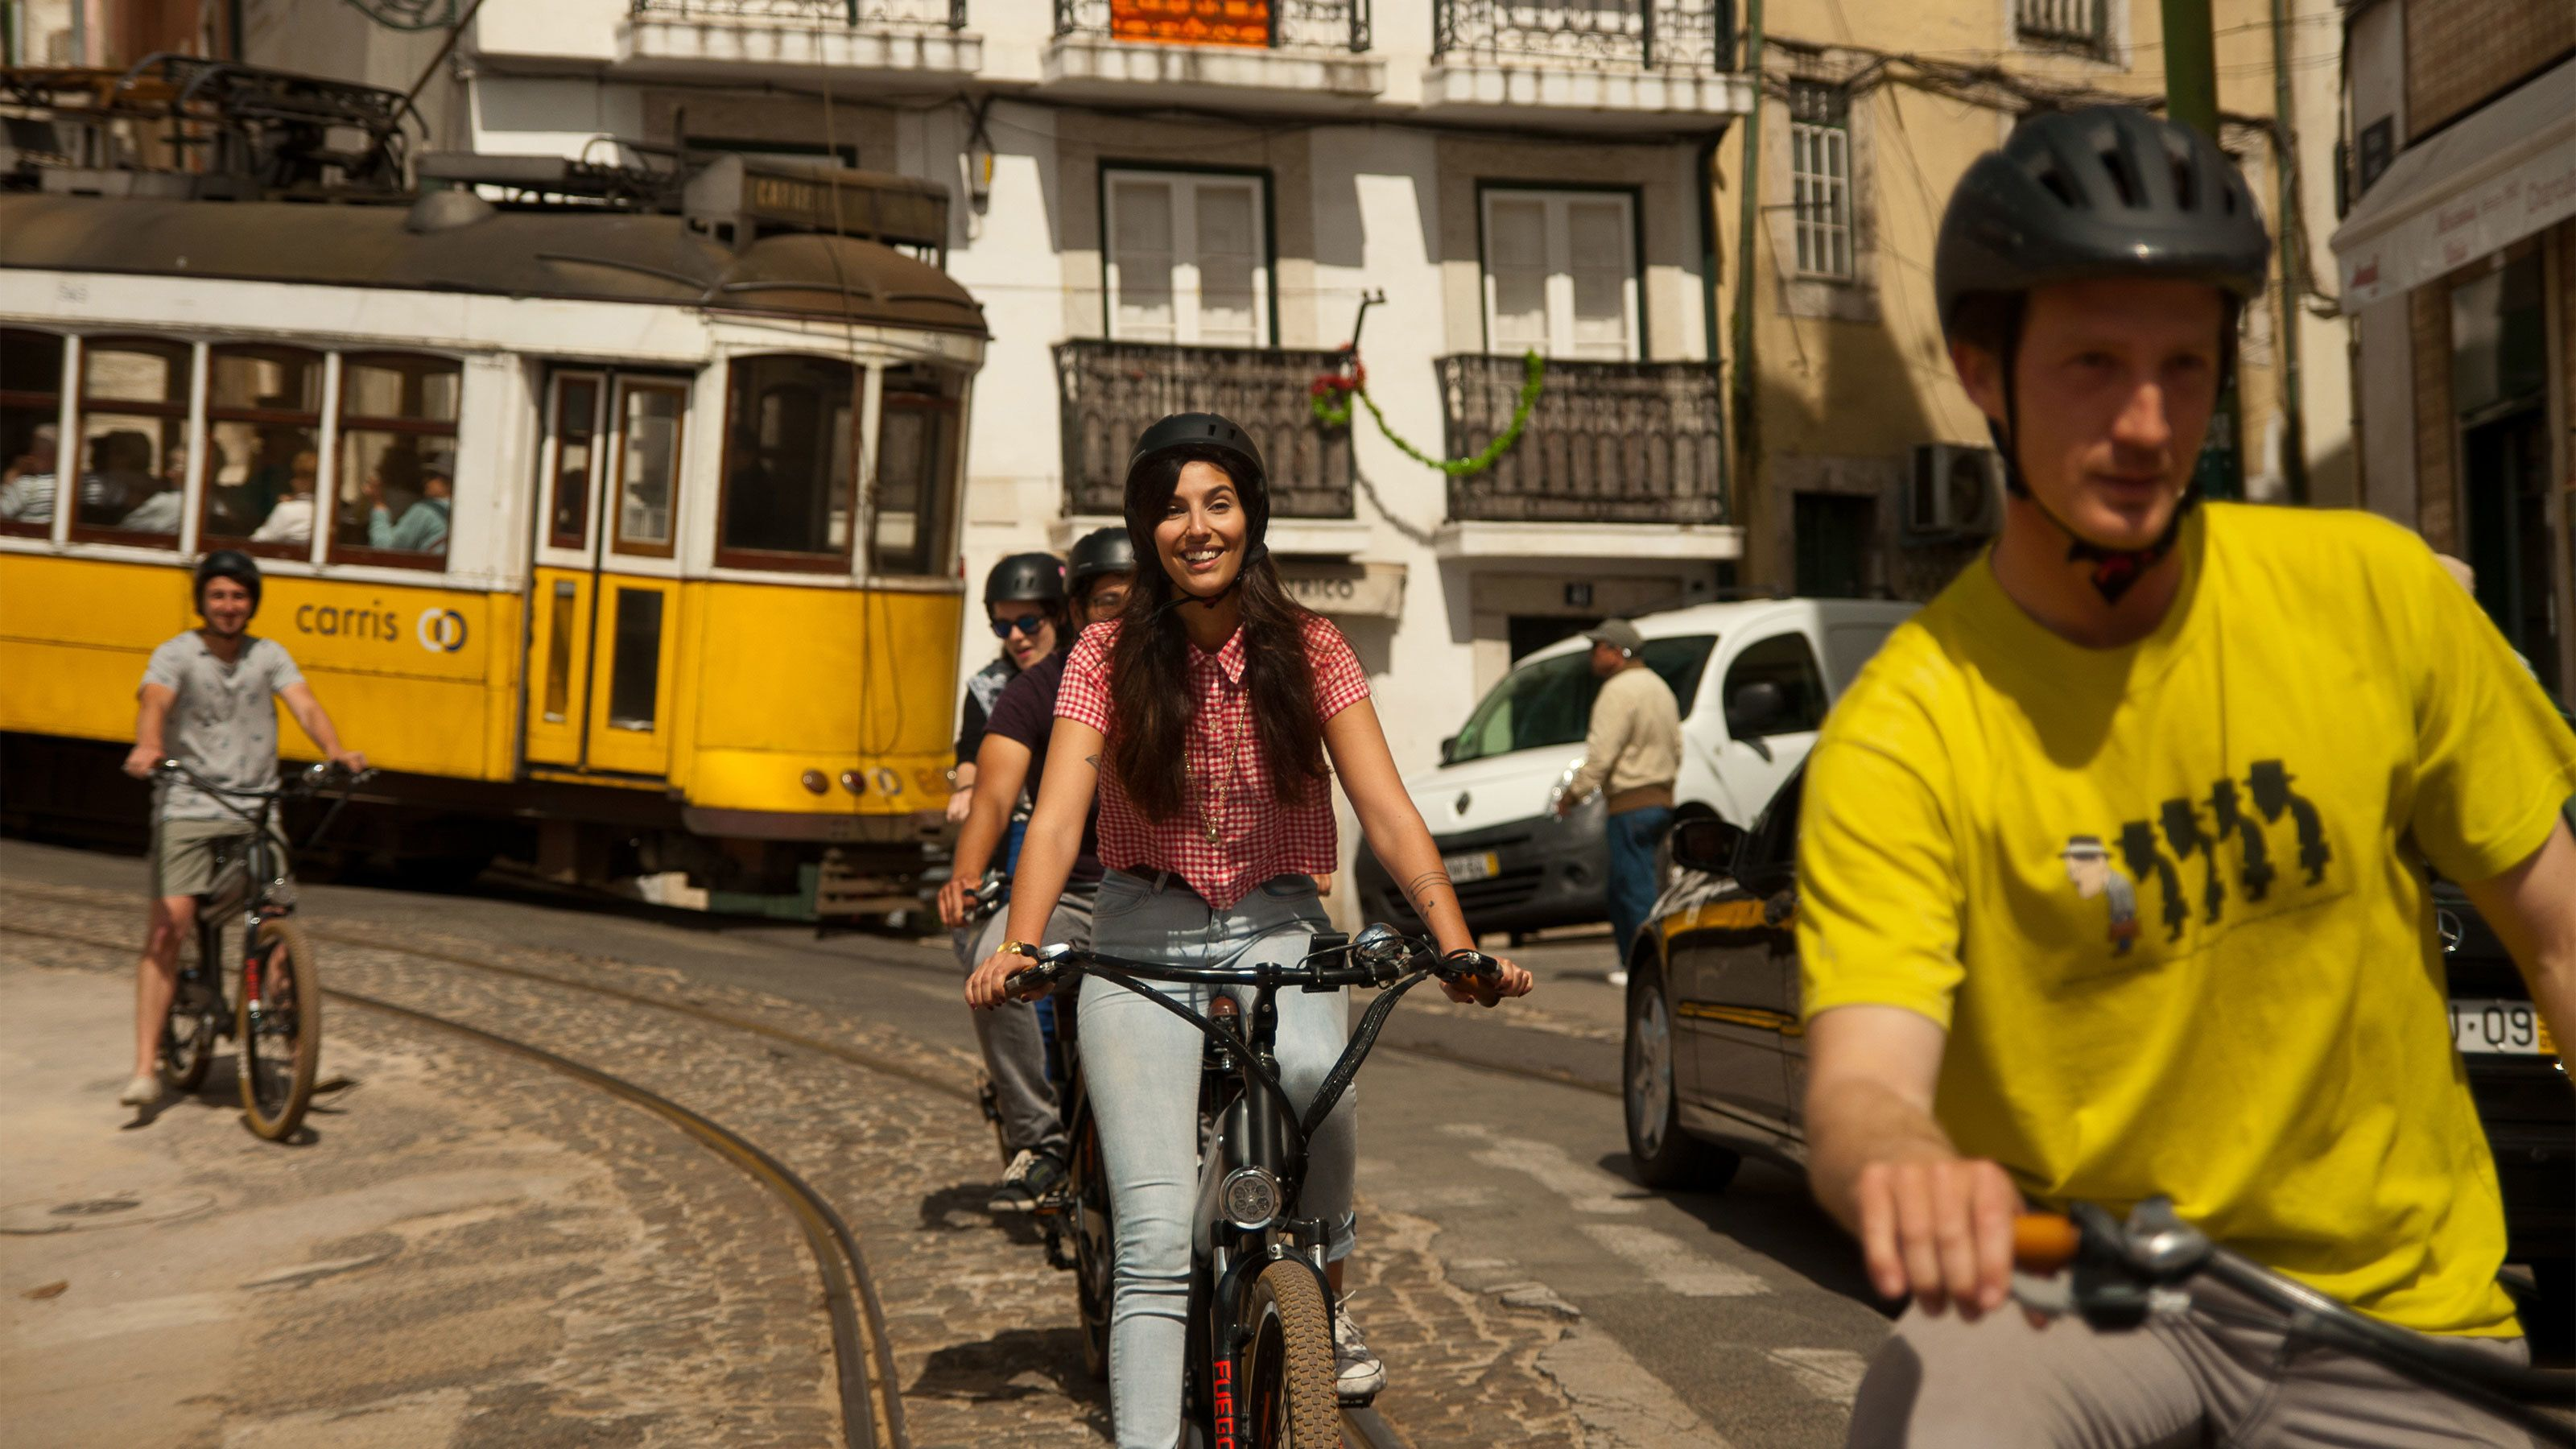 Bicycling group on the street in Lisbon